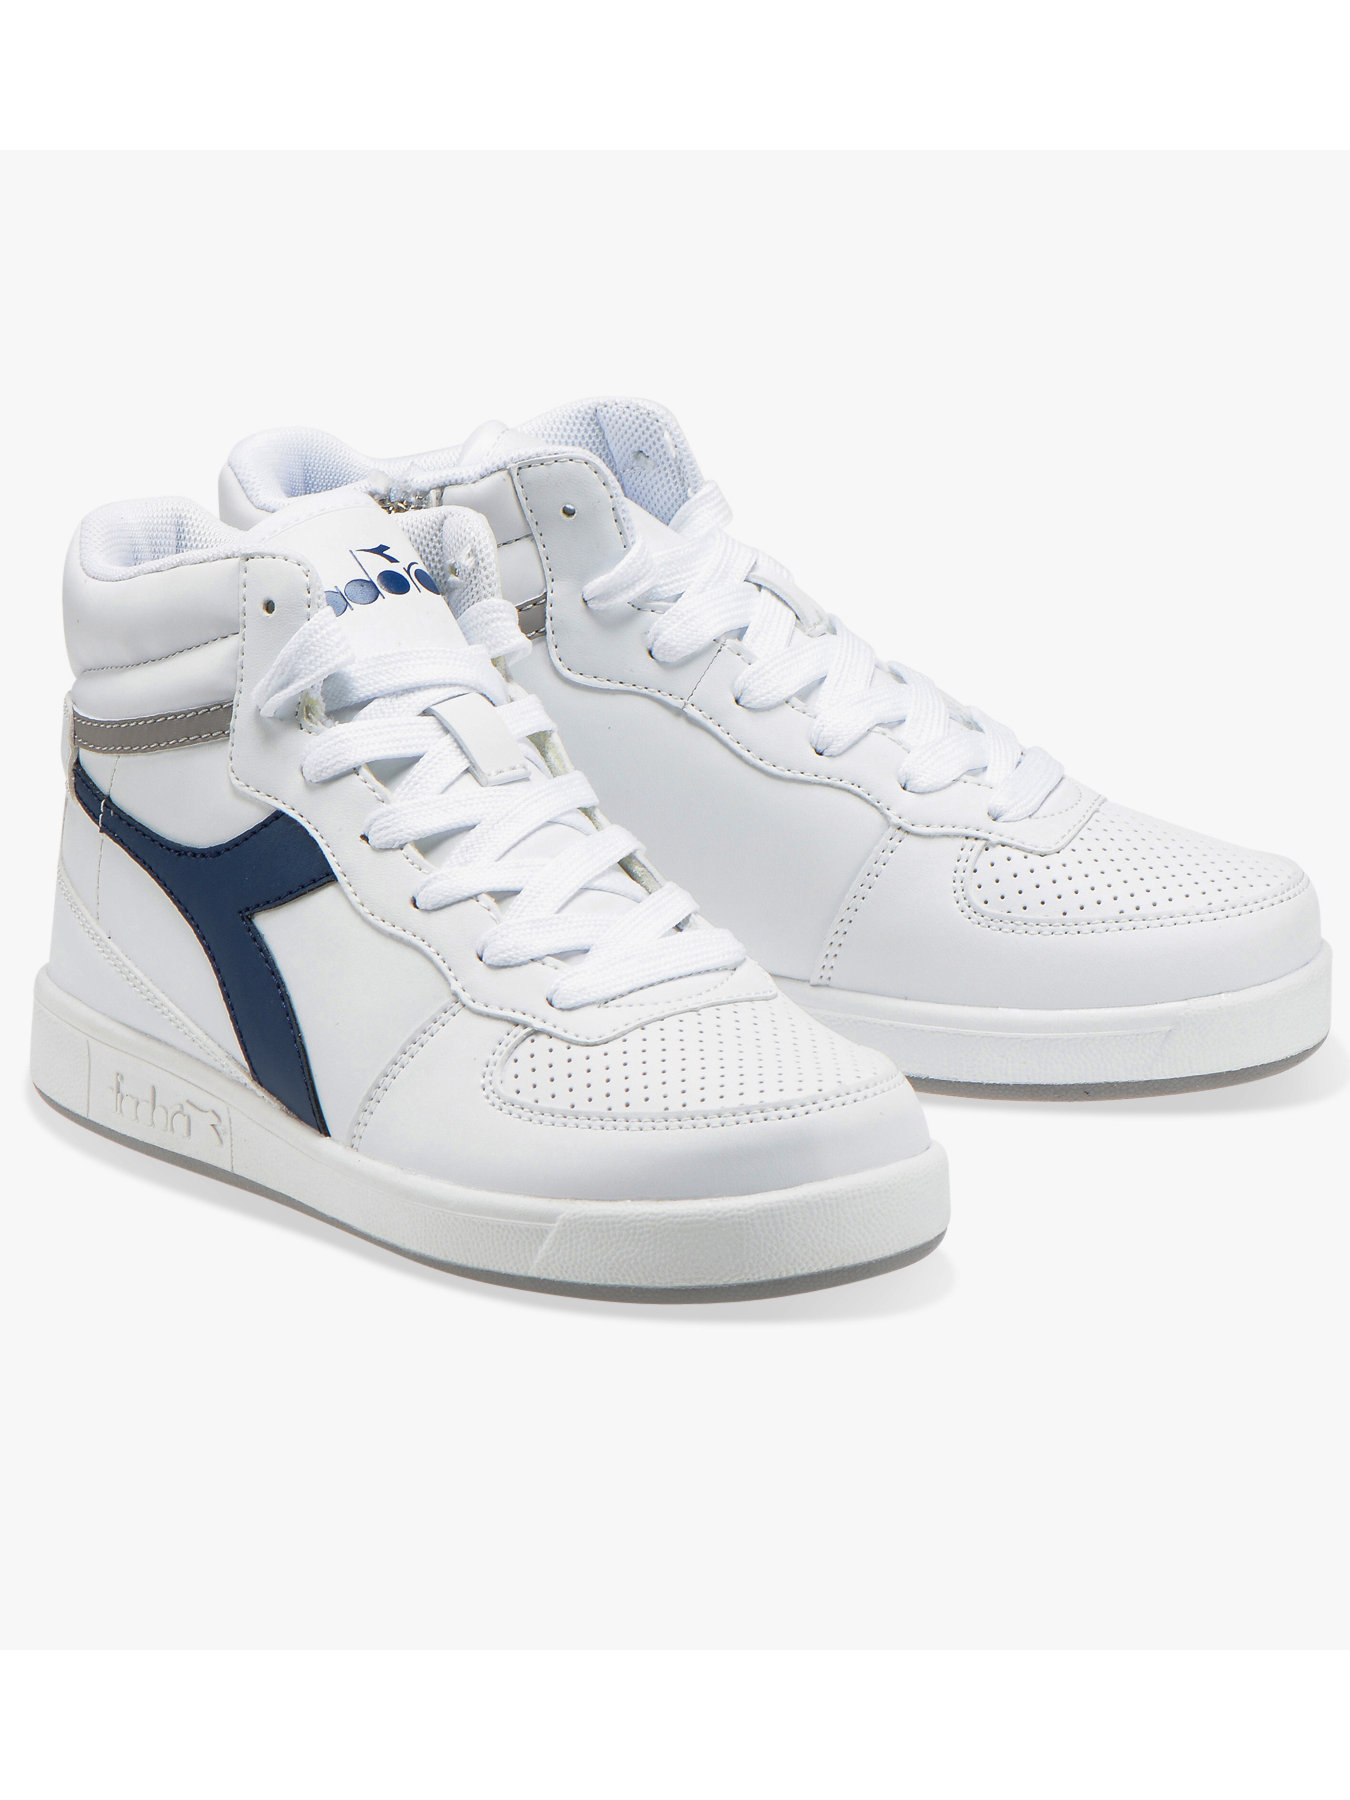 the best attitude 6d862 e4c0c Details about Diadora Sneakers Sport Shoes Playground High Basket Mid  Lifestyle White